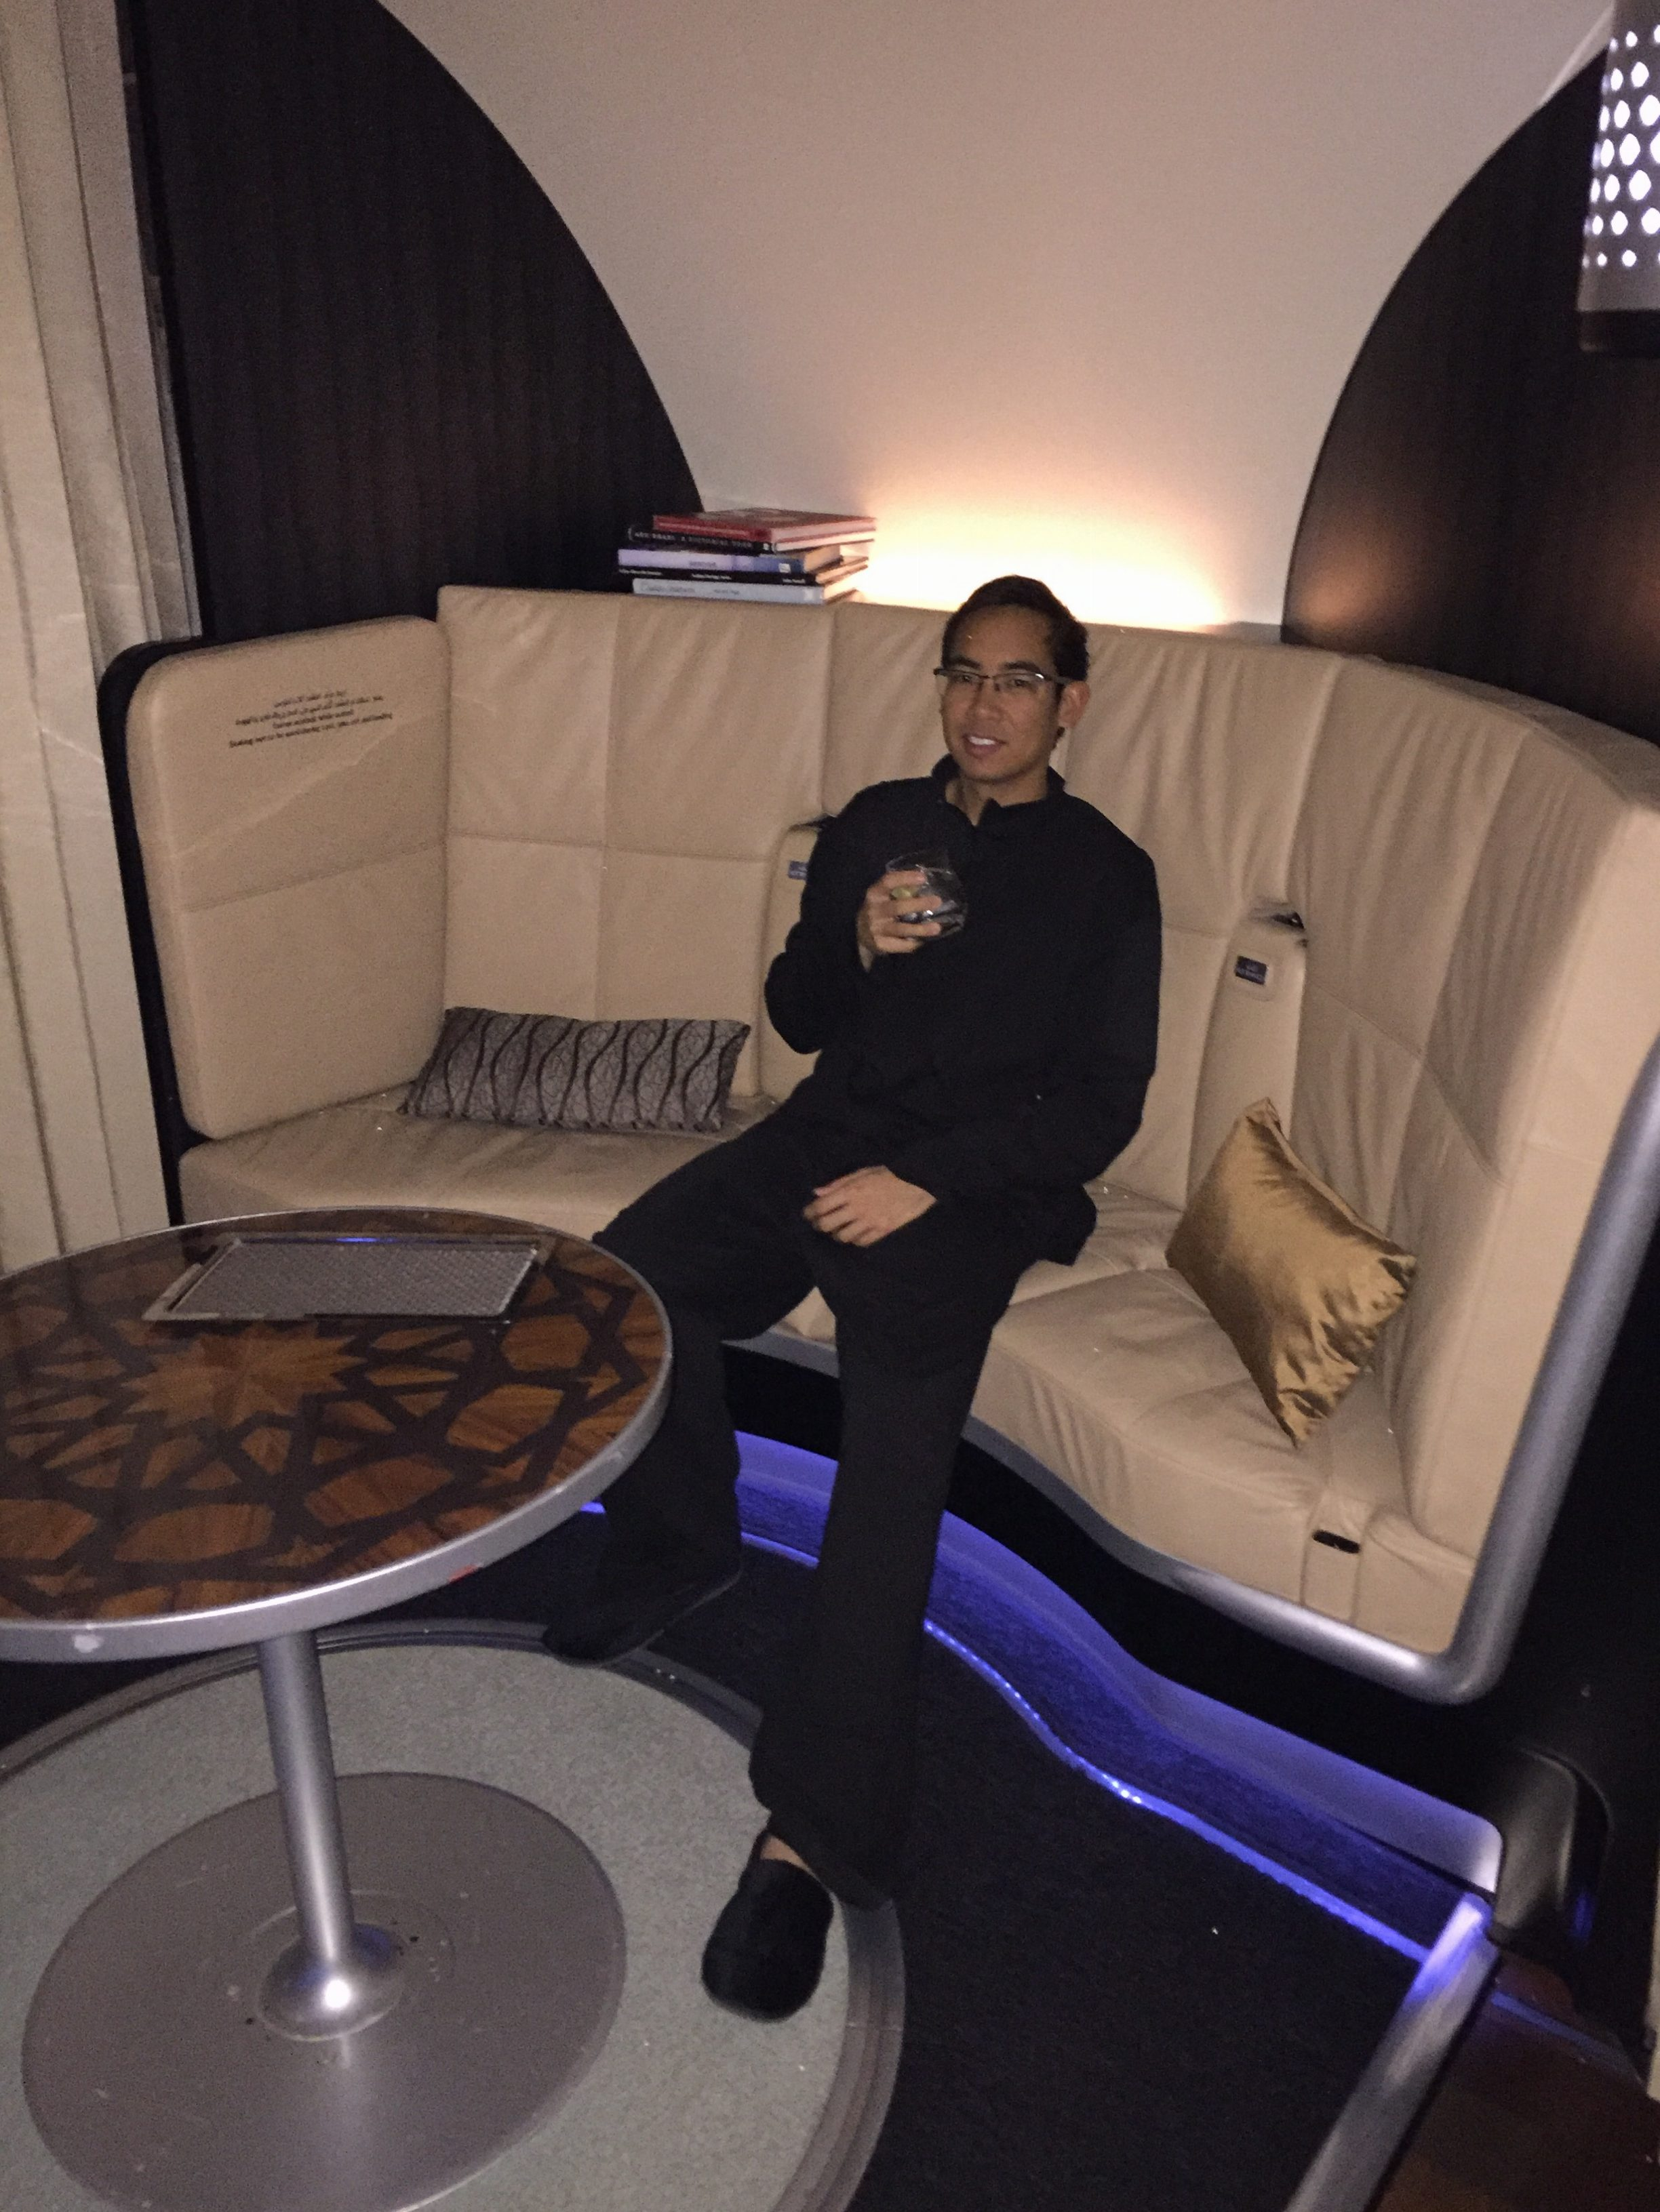 Having a drink in the shared on-board lounge